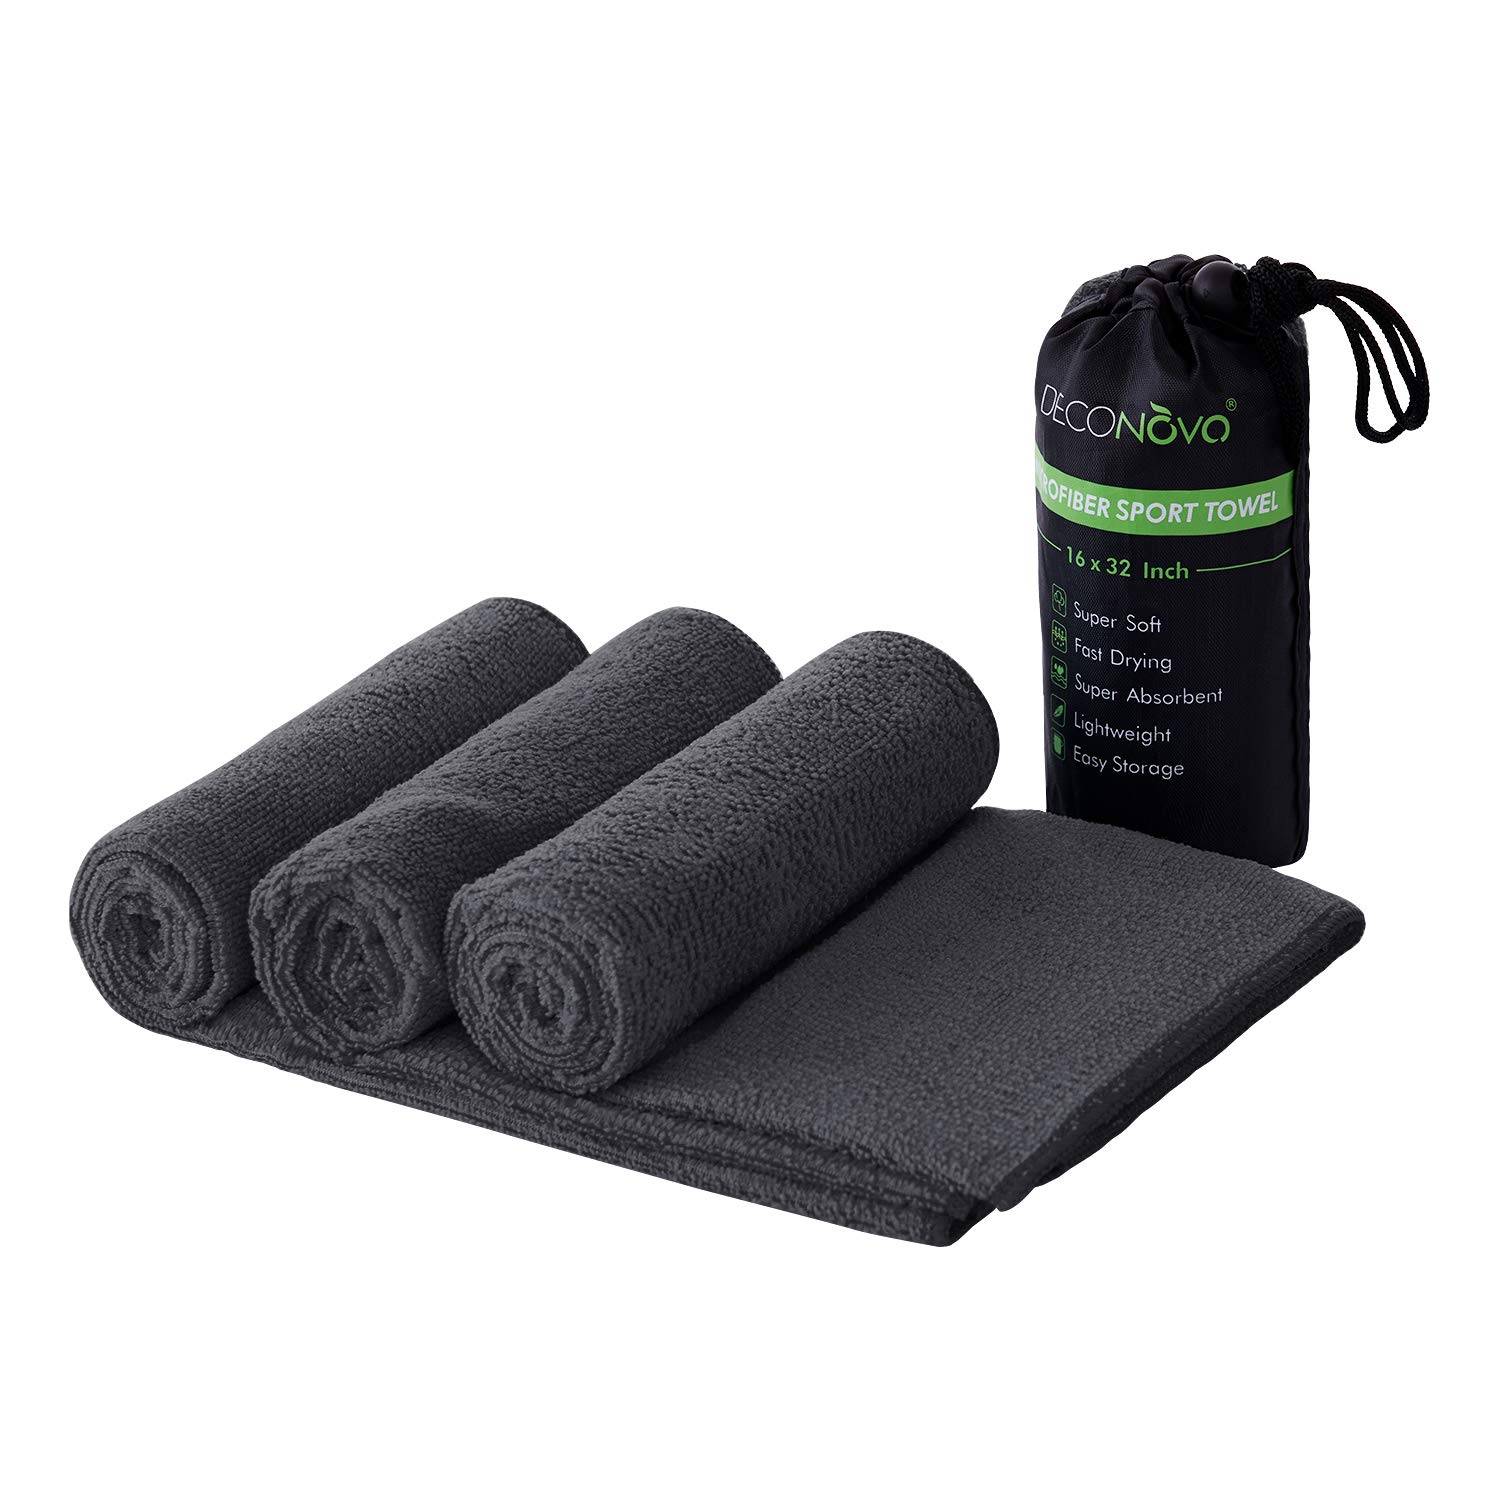 Deconovo Multi-Purpose Microfiber Sports Towel Absorbent Fitness Fast Drying Lightweight Swimming Workout Ultra Compact Towels for Travel Sweat Gym Camping with Mesh Bag